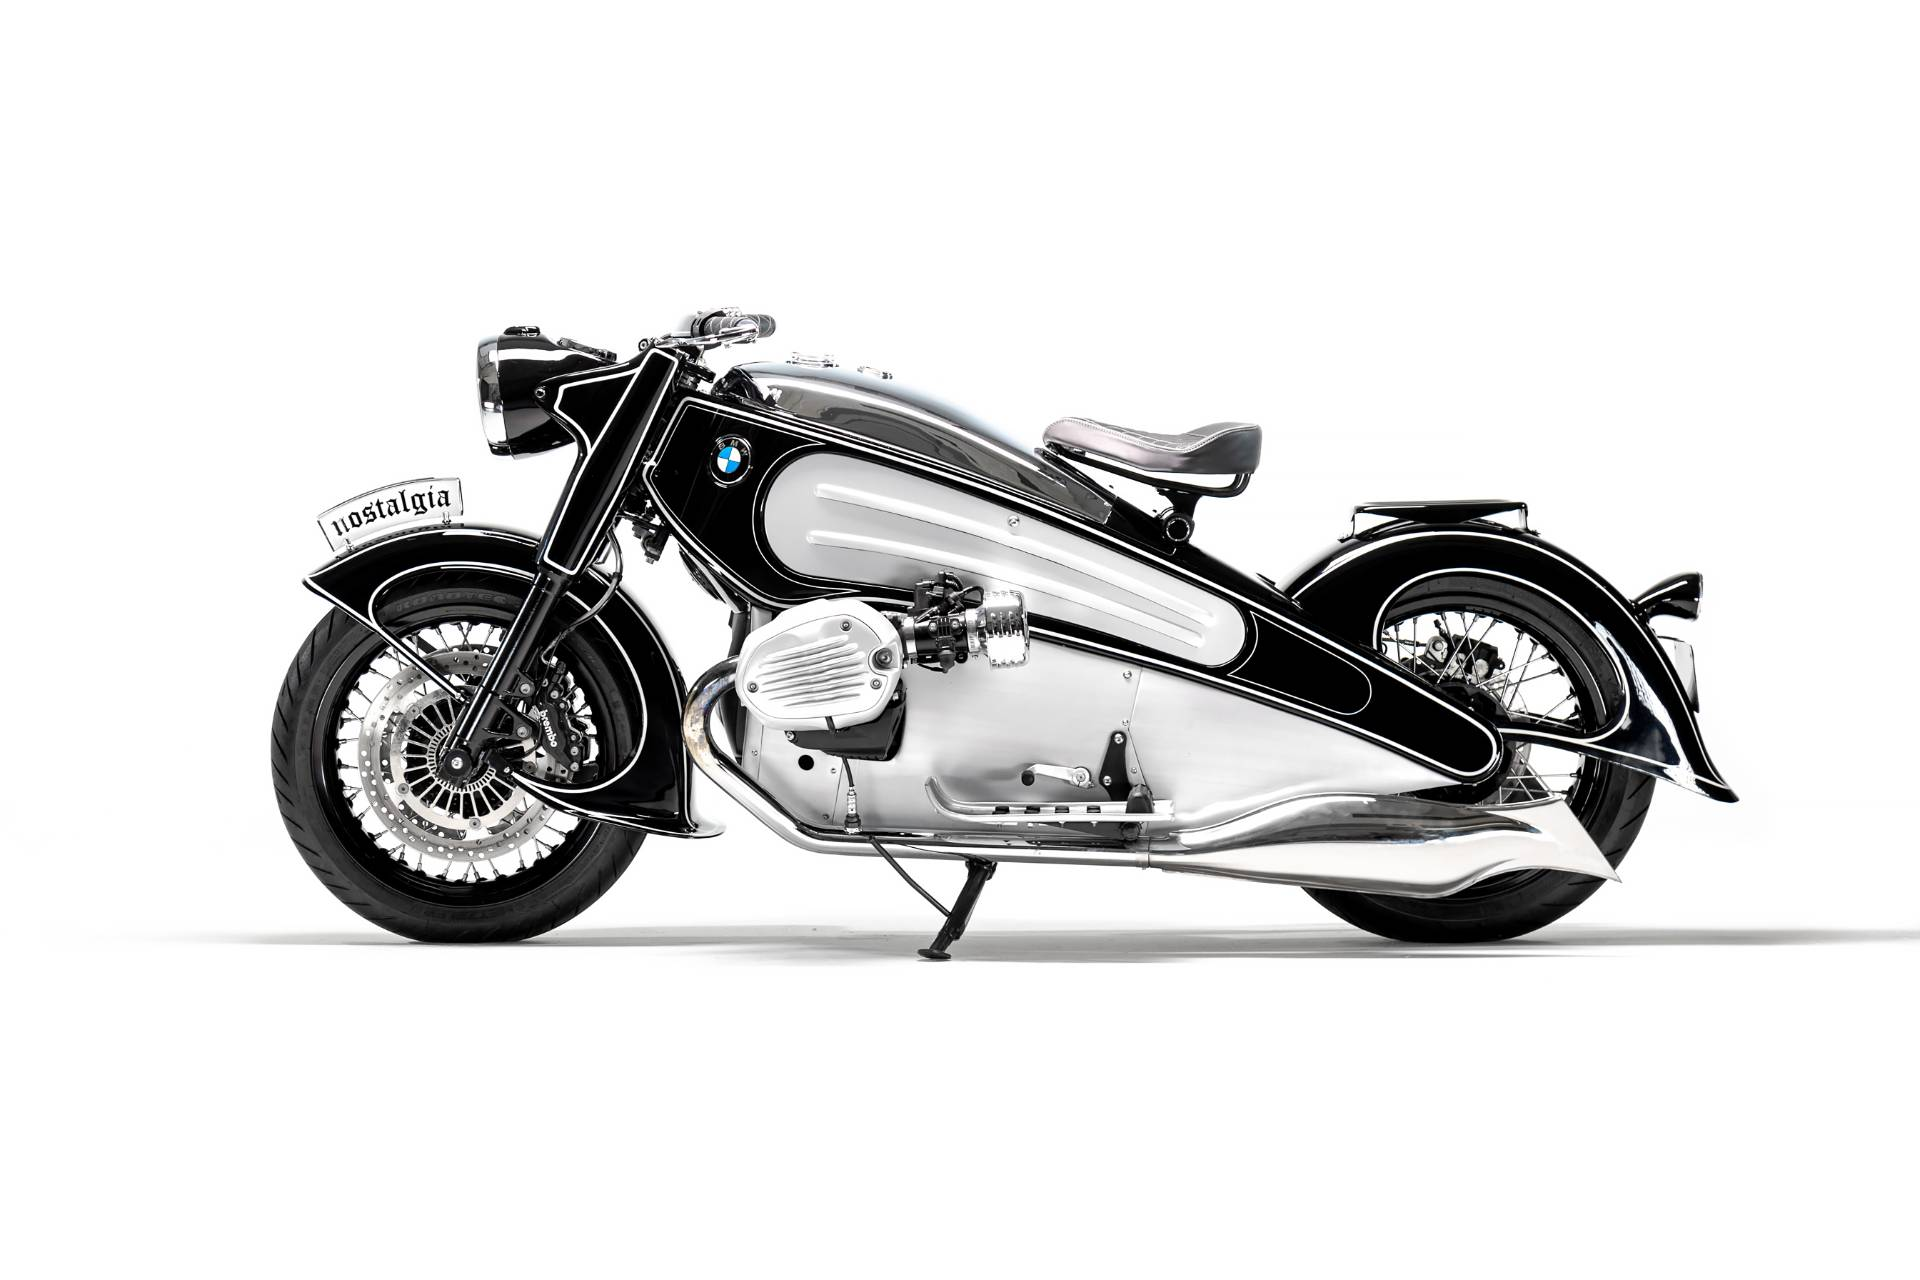 New 2019 BMW Nostalgia for sale, BMW Motorcycle Nostalgia, new BMW Motorcycle, Vintage, R7, BMW Motorcycles of Miami, Motorcycles of Miami, Motorcycles Miami - Photo 32